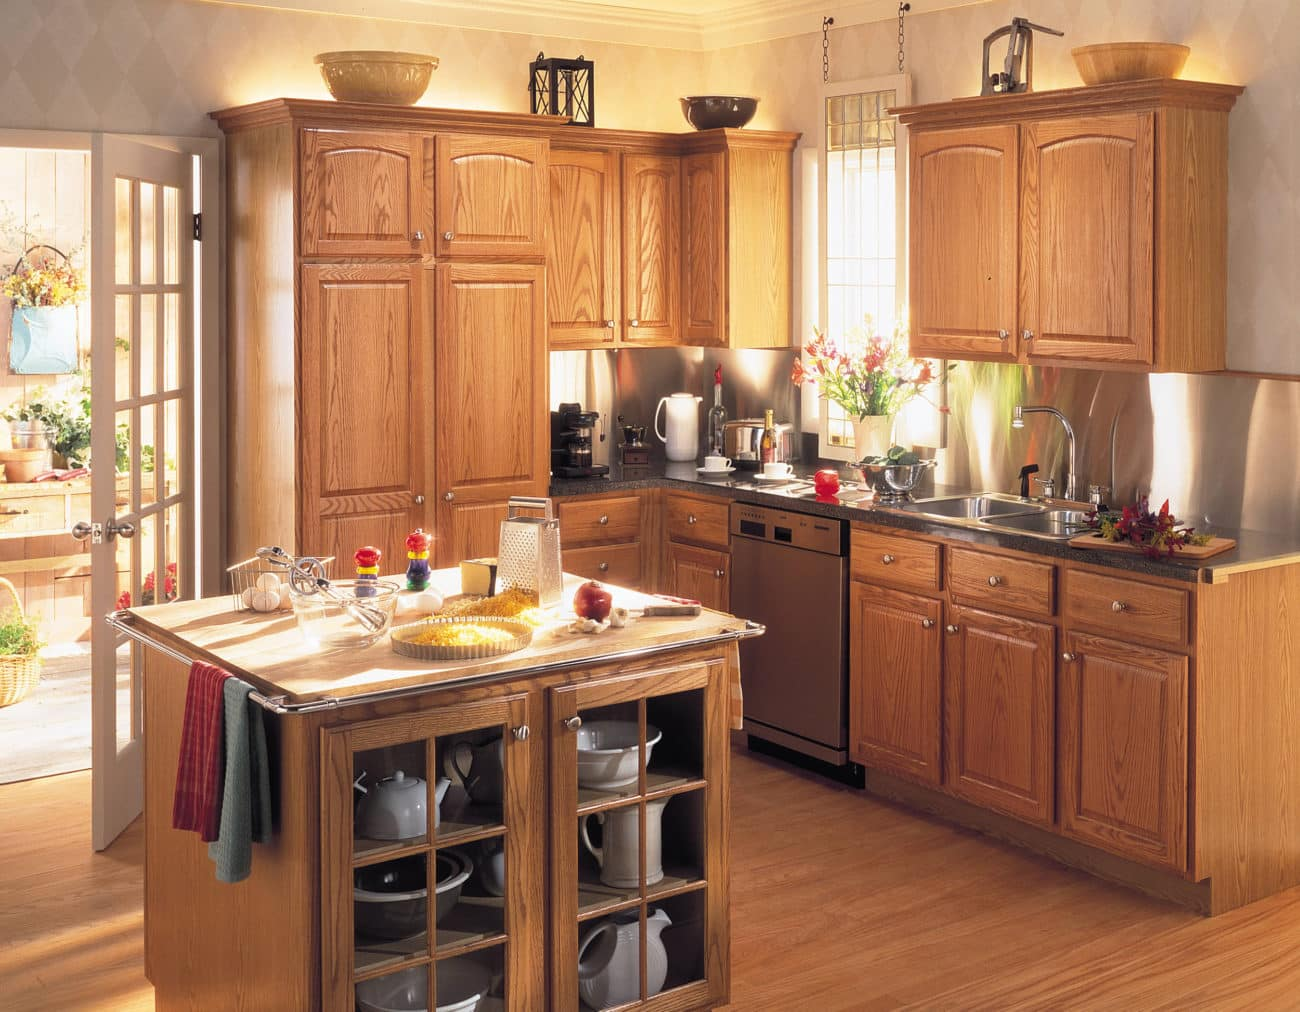 Kitchen Remodeling Albuquerque Decoration Extraordinary Albuquerque Cabinets Aesops Gables 505 2751804  Best Cabinets . Inspiration Design